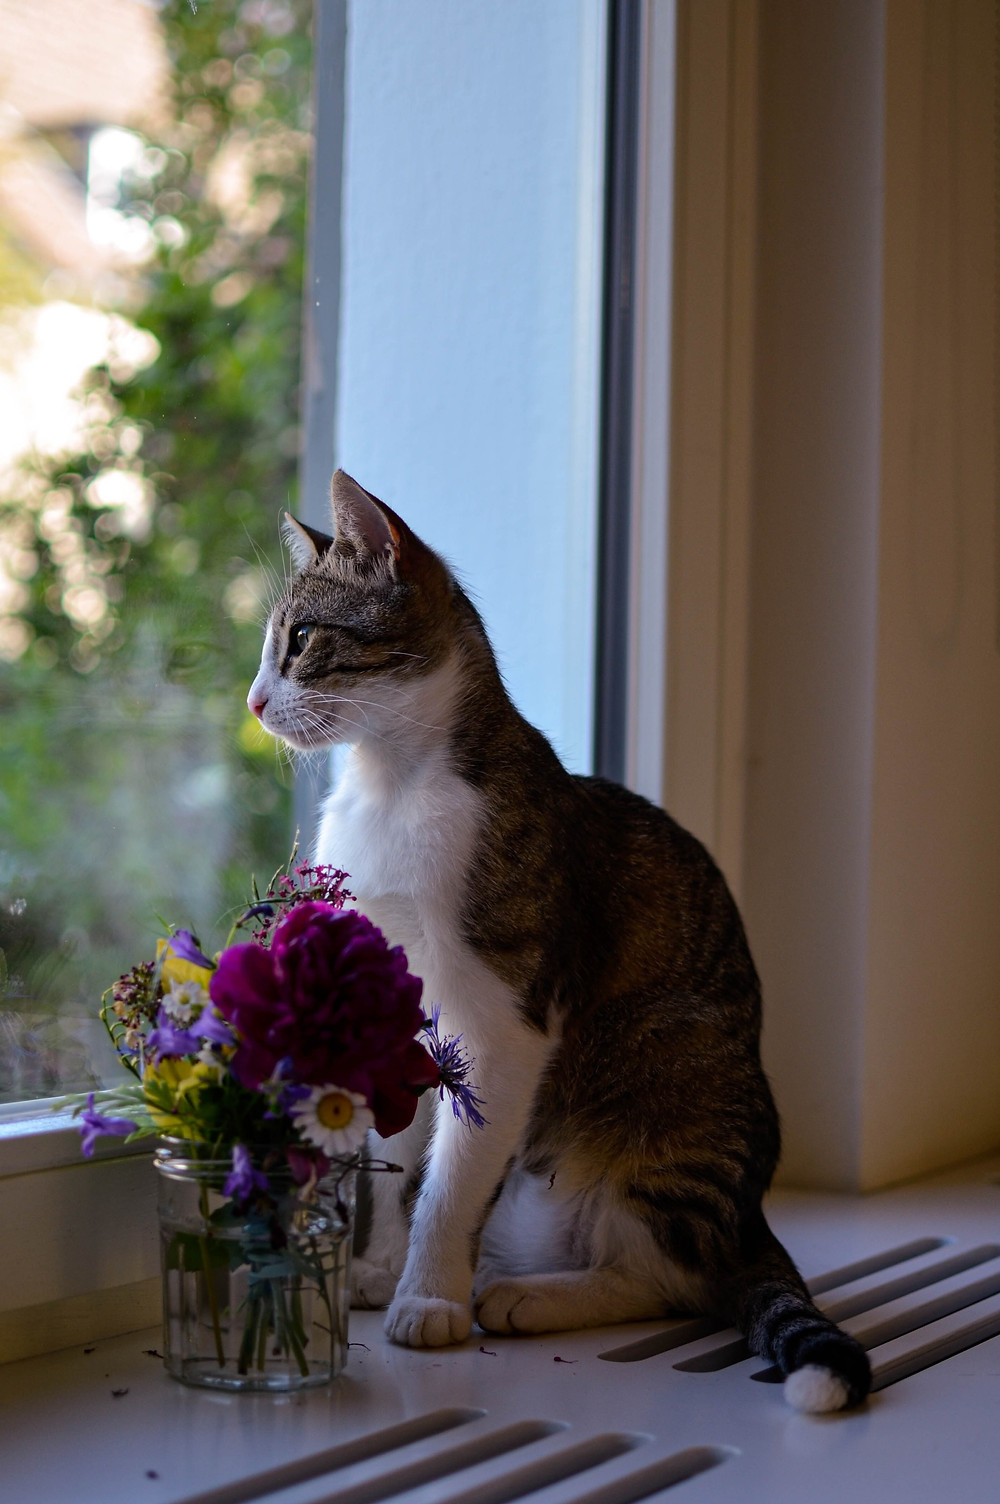 Cat looking out the window next to a bouquet of flowers.